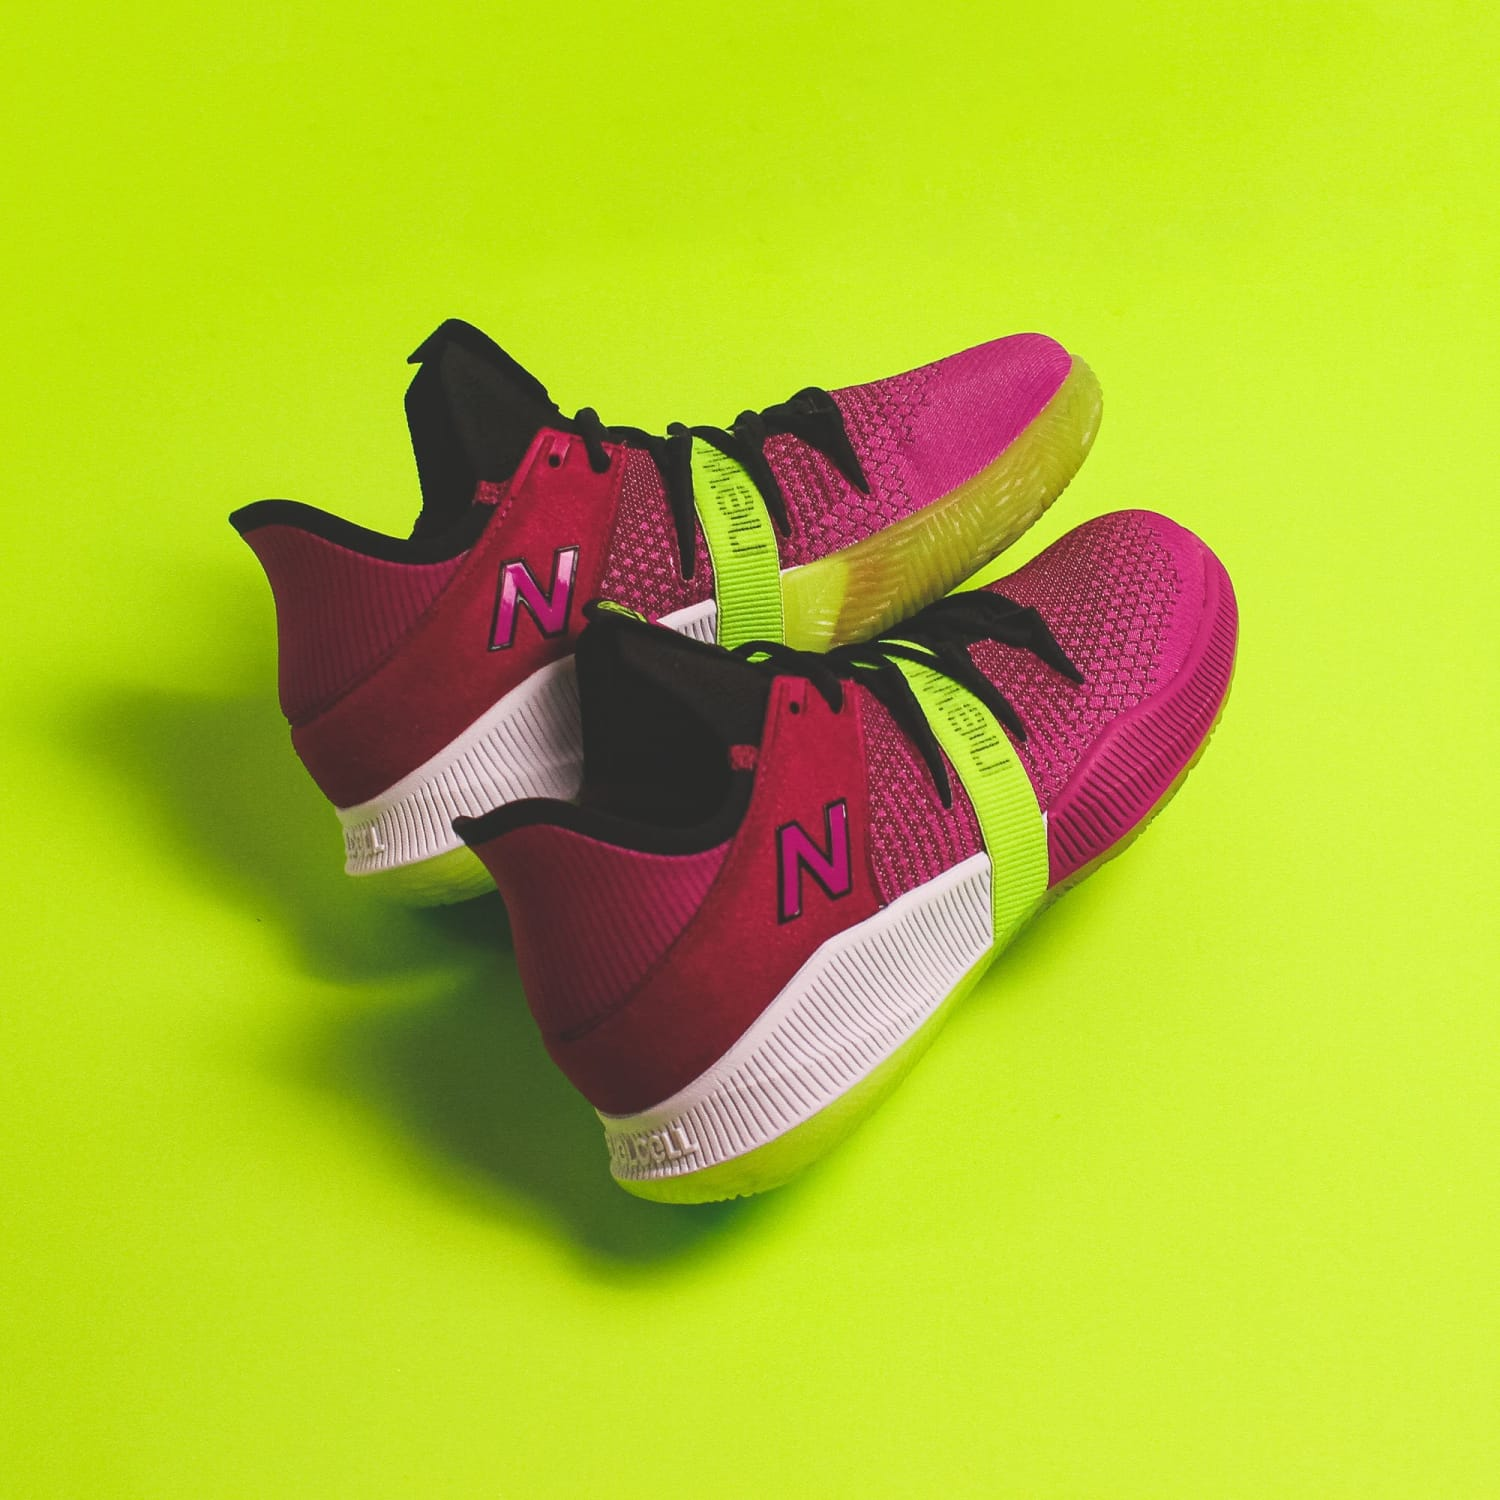 New Balance Basketball: The Berry Lime Collection